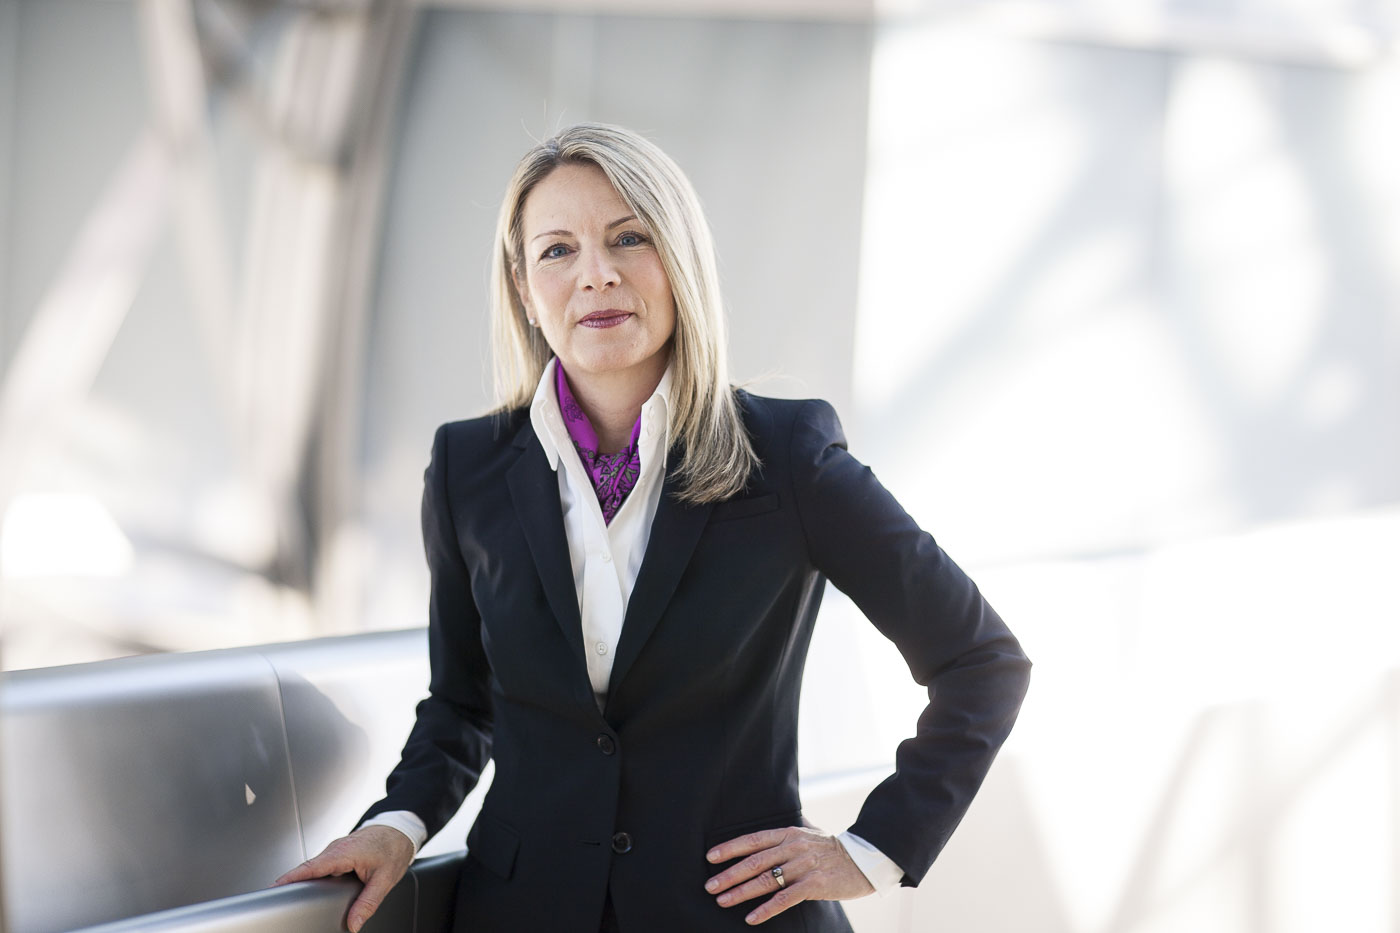 Jutta Steinert WINGS MBA Business Consulting